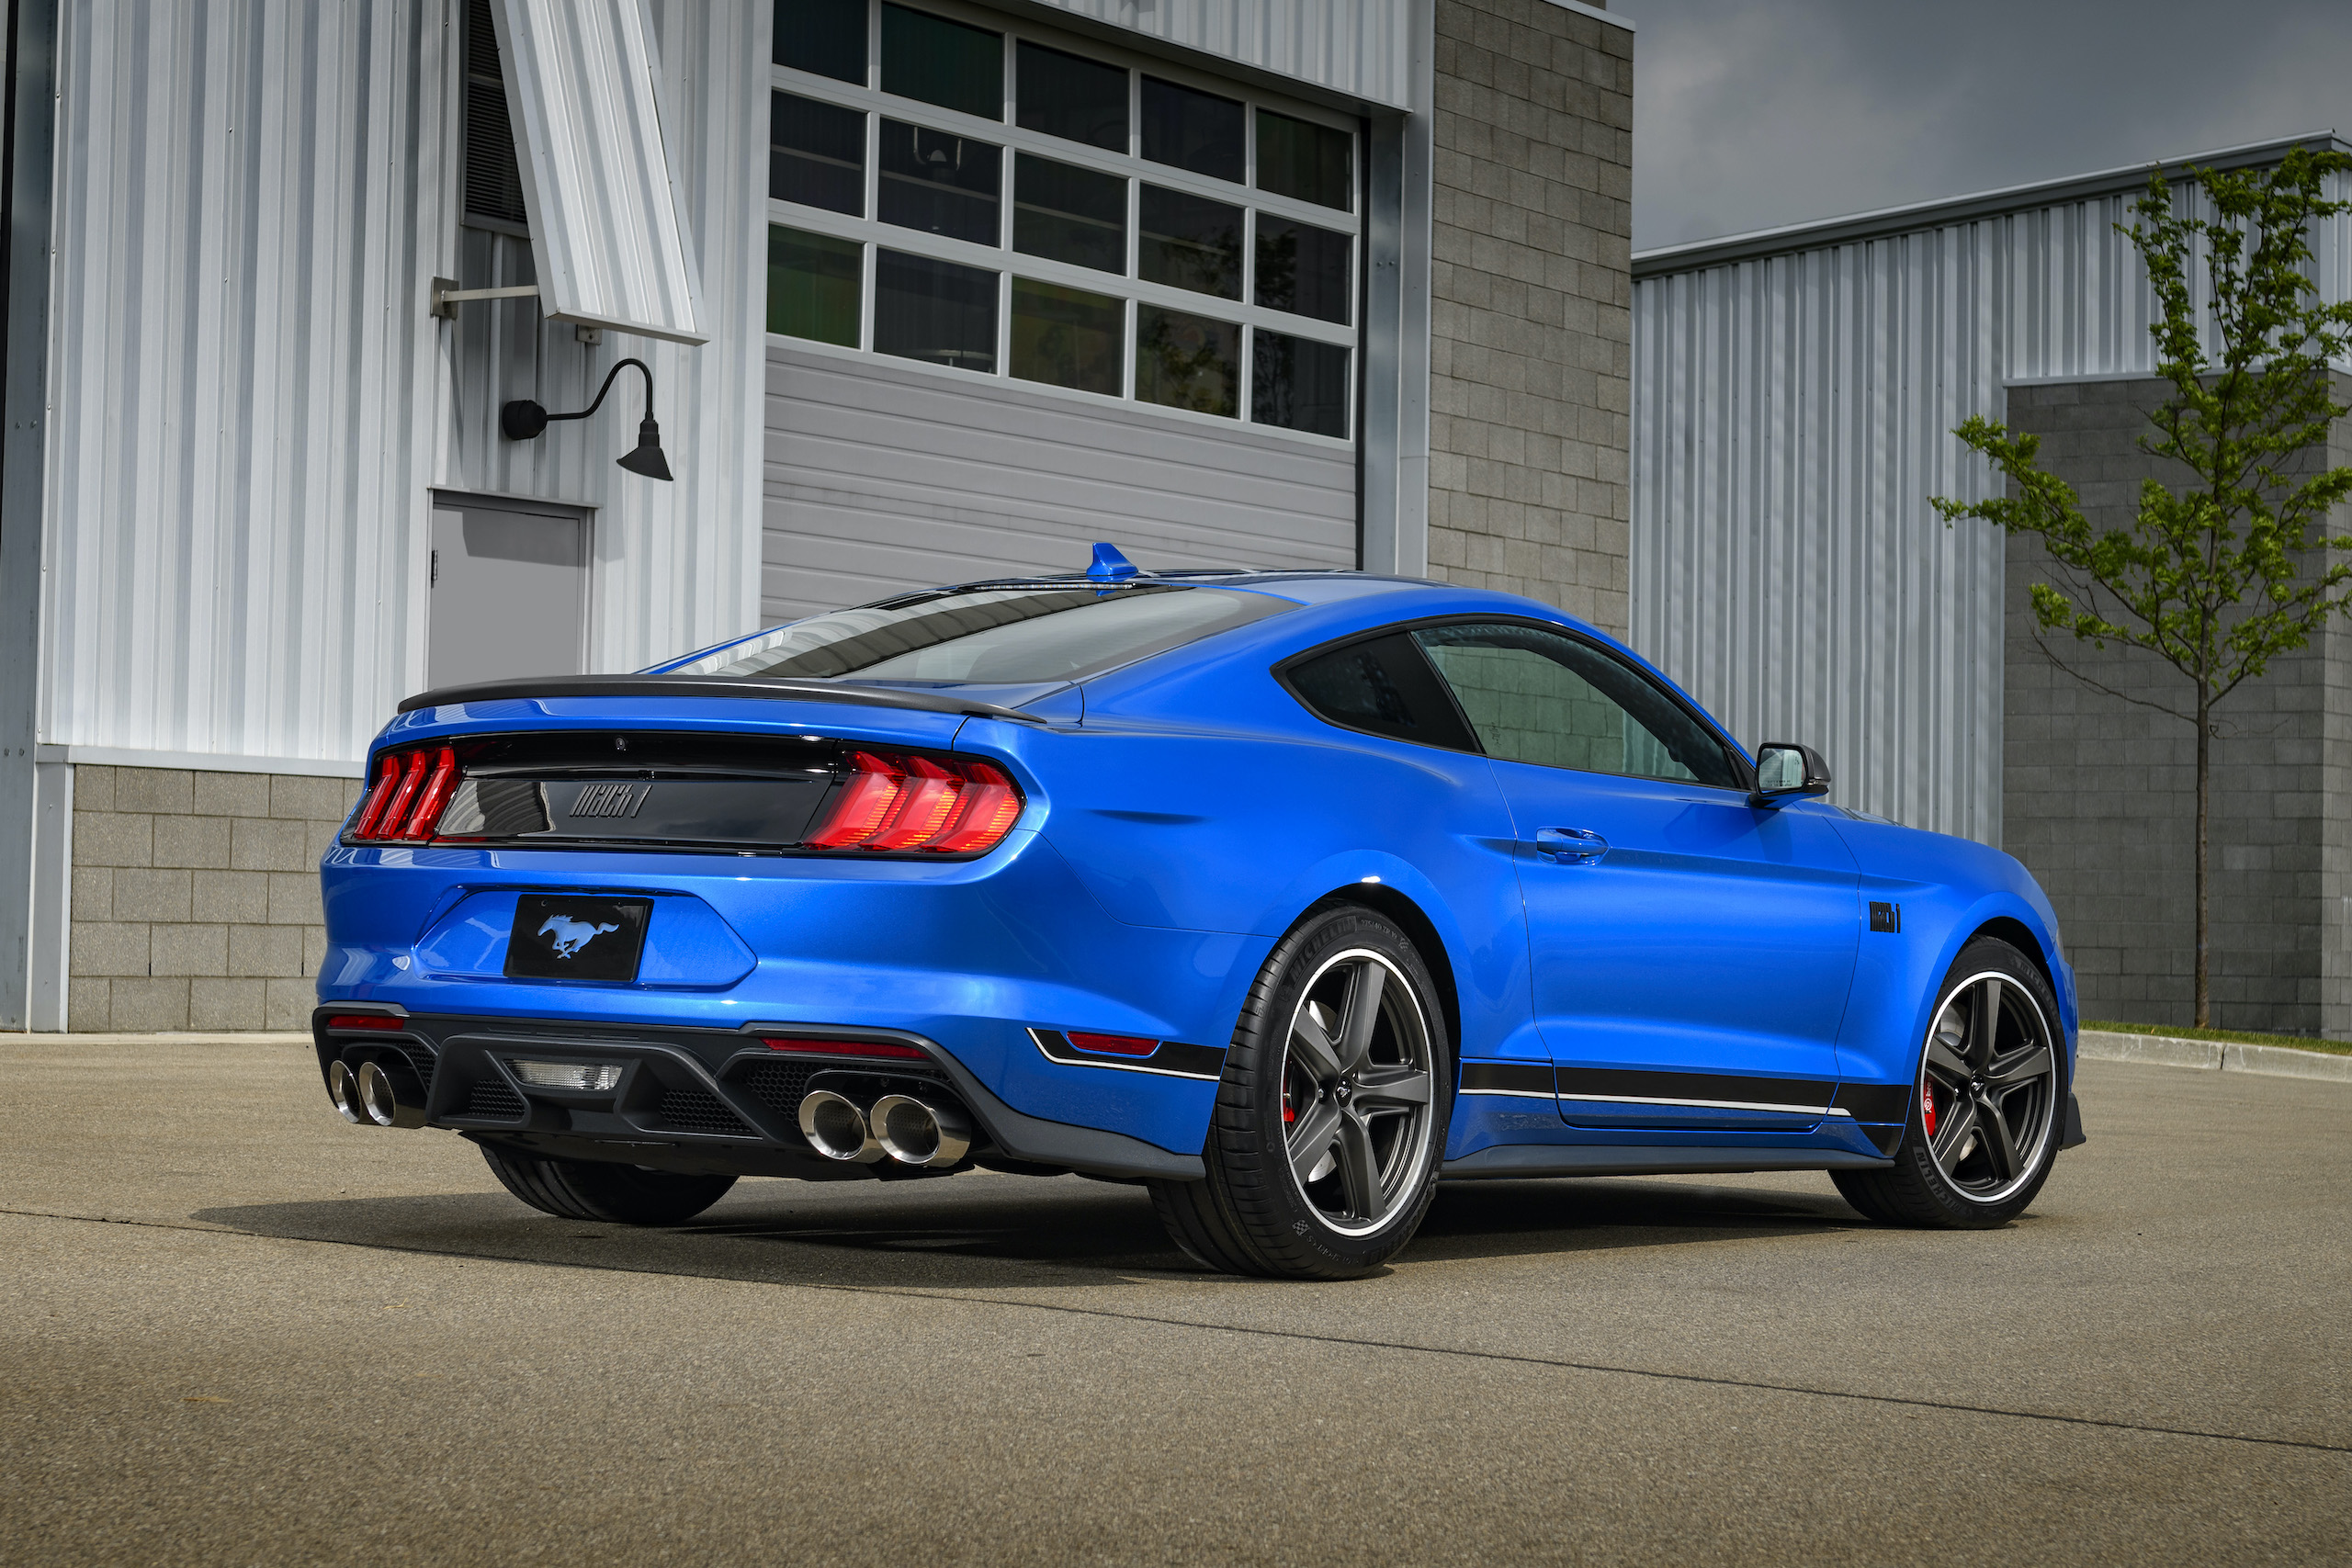 2021 Mustang Mach 1 blue rear three-quarter